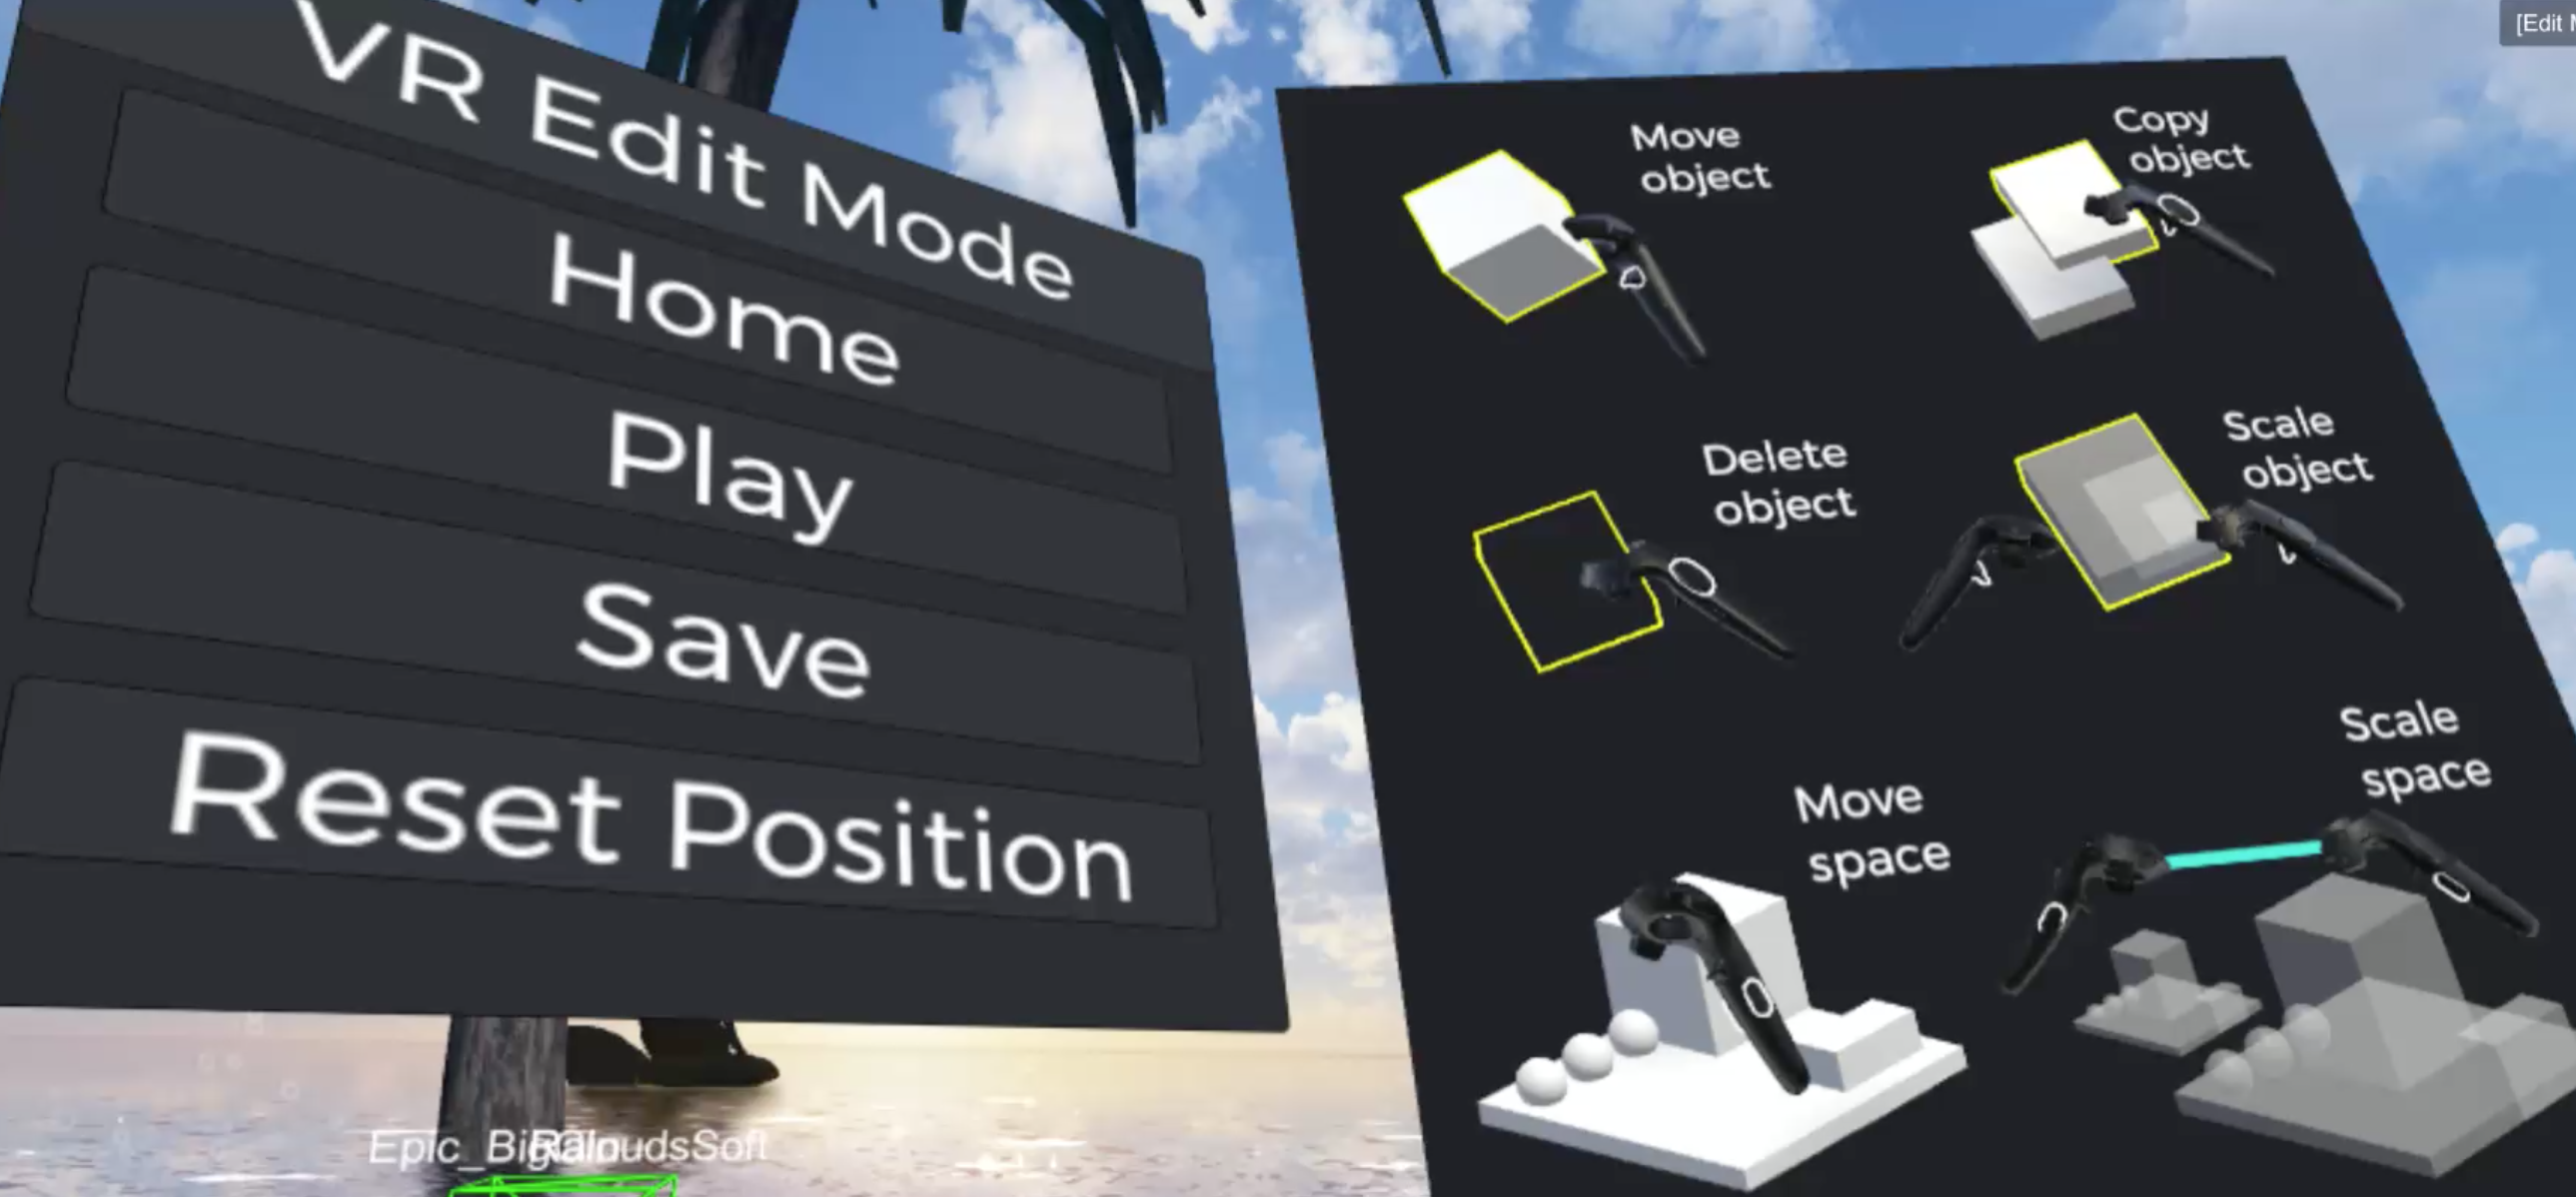 "How to use the ""VR Edit Mode"" function"